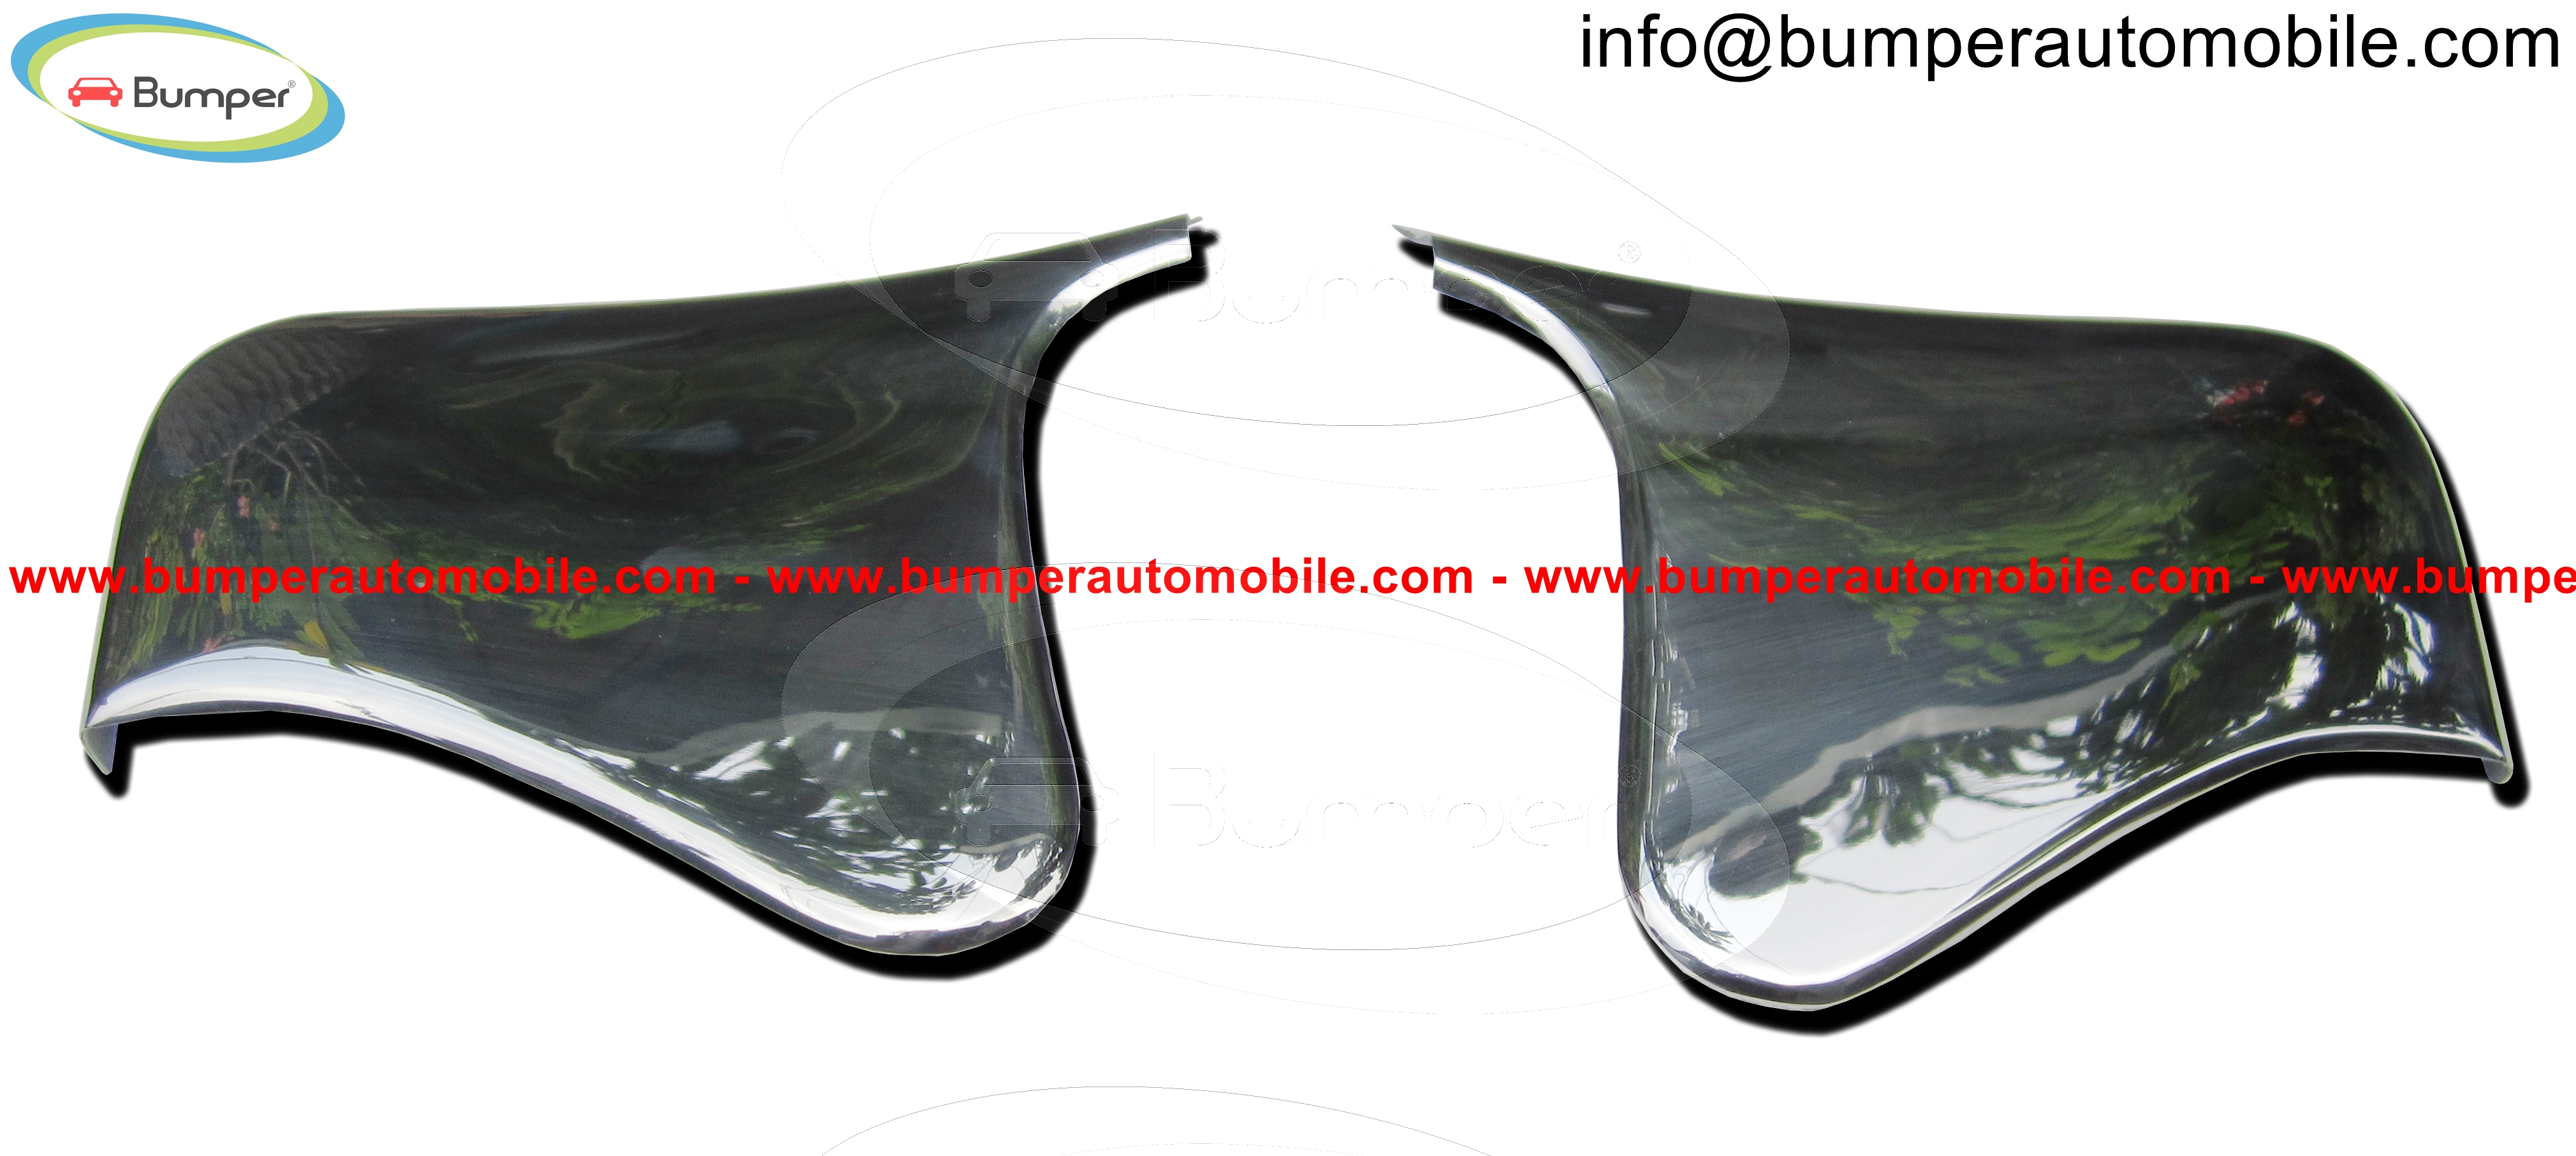 Mercedes 190SL Roadster stone guards (1955-1963)